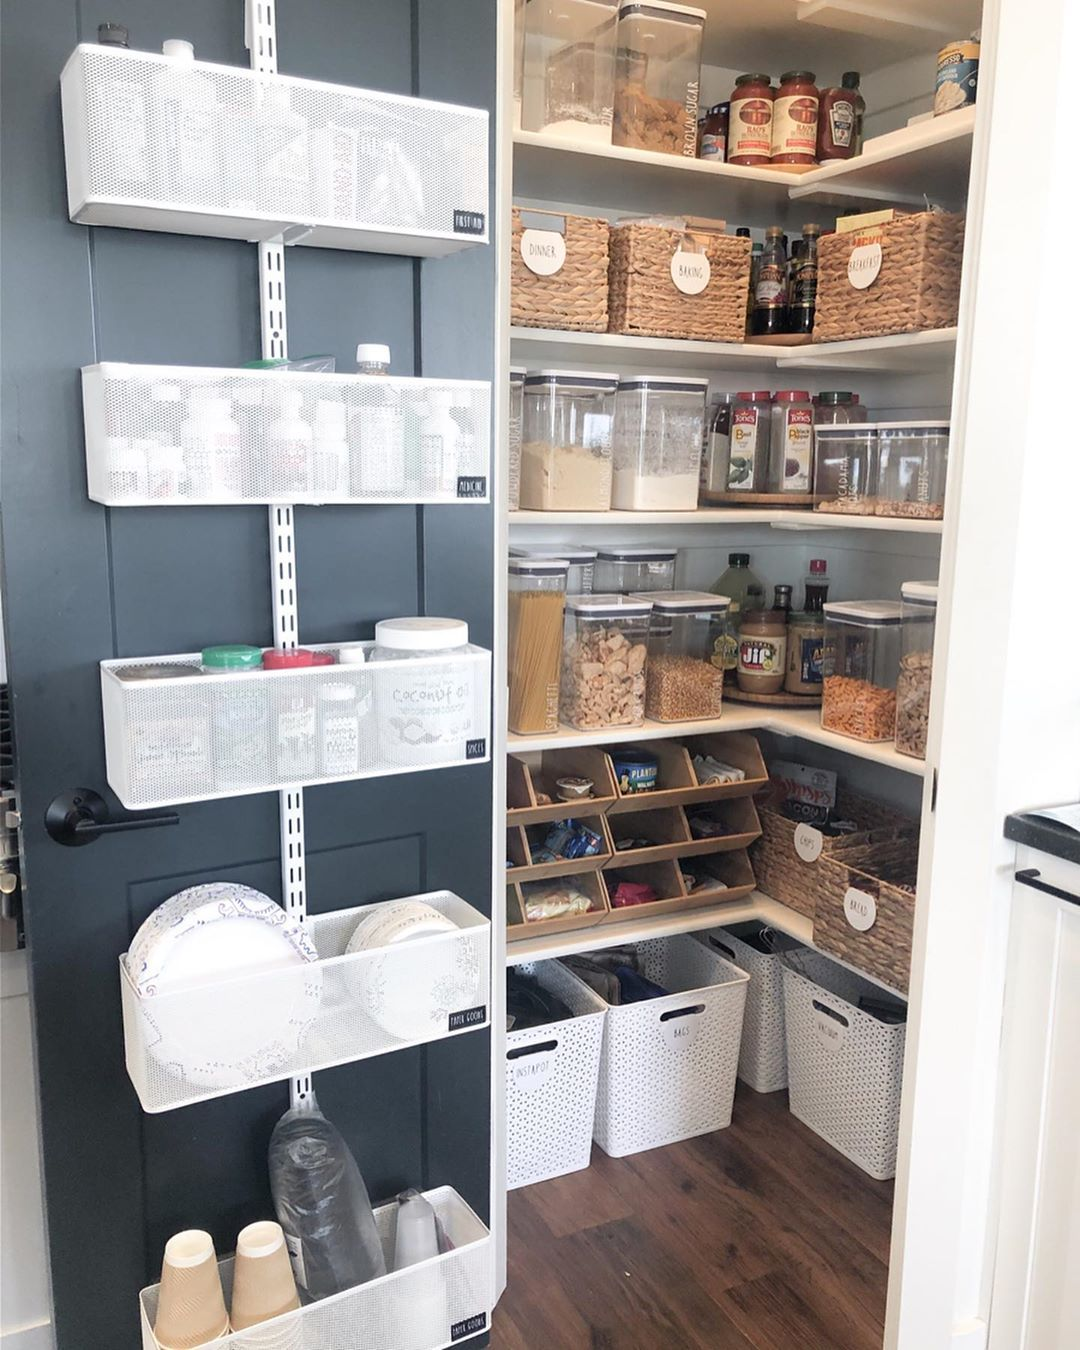 "Simply Better Organization on Instagram: ""In this corner pantry we created more room by adding an Elfa door rack. I love how it looks on this black door �. We created zones and most…"""